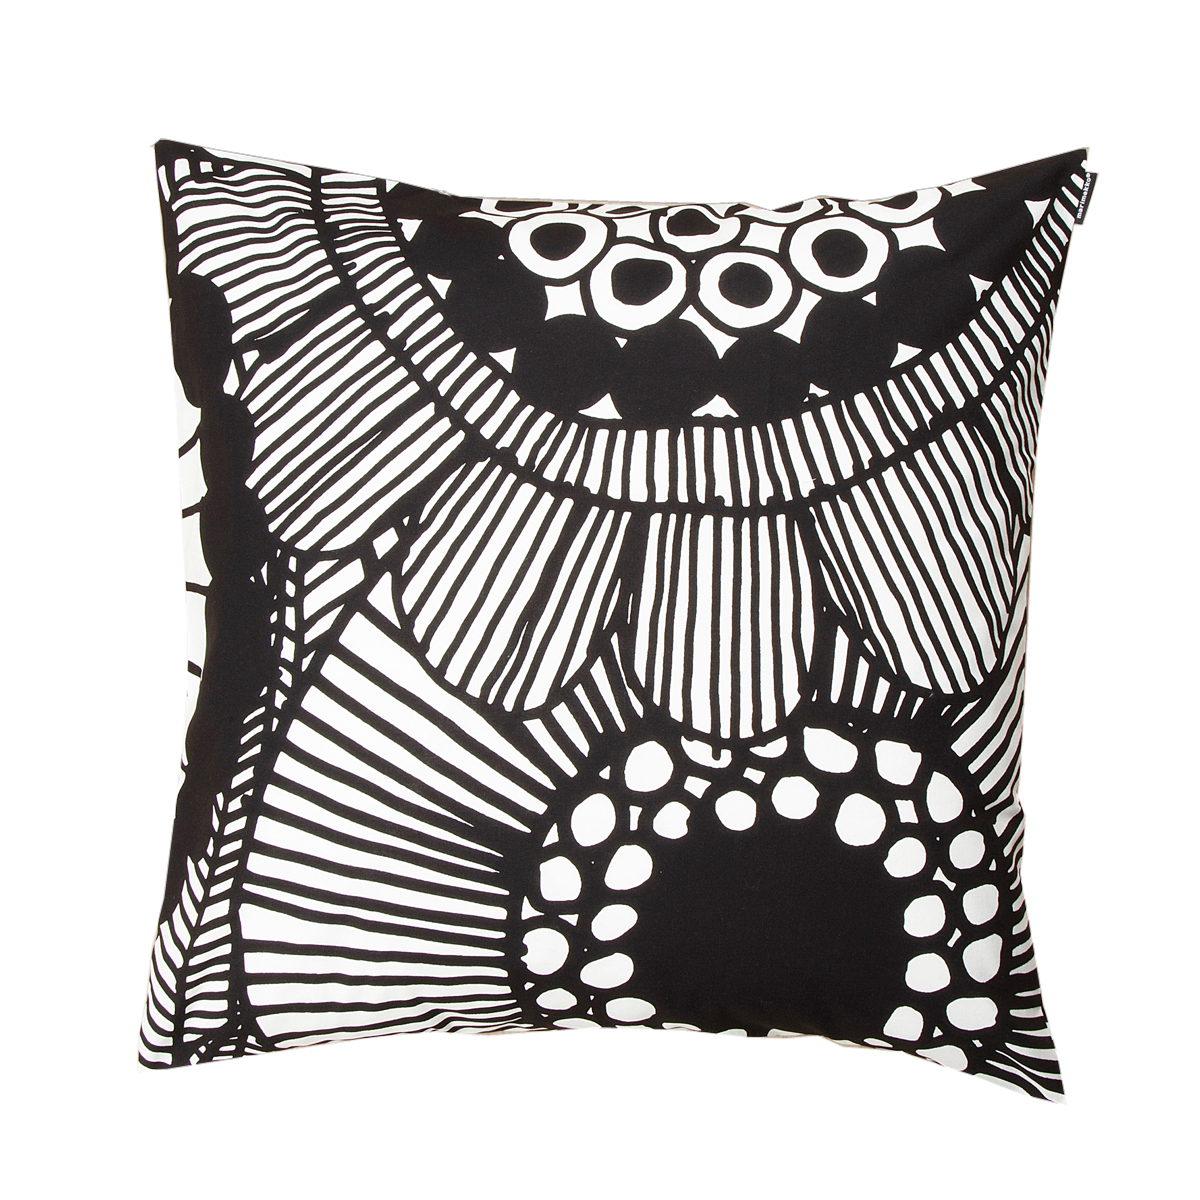 Oversized White Decorative Pillows : Marimekko Siirtolapuutarha White / Black Large Throw Pillow - Marimekko Fabric & Throw Pillow Sale